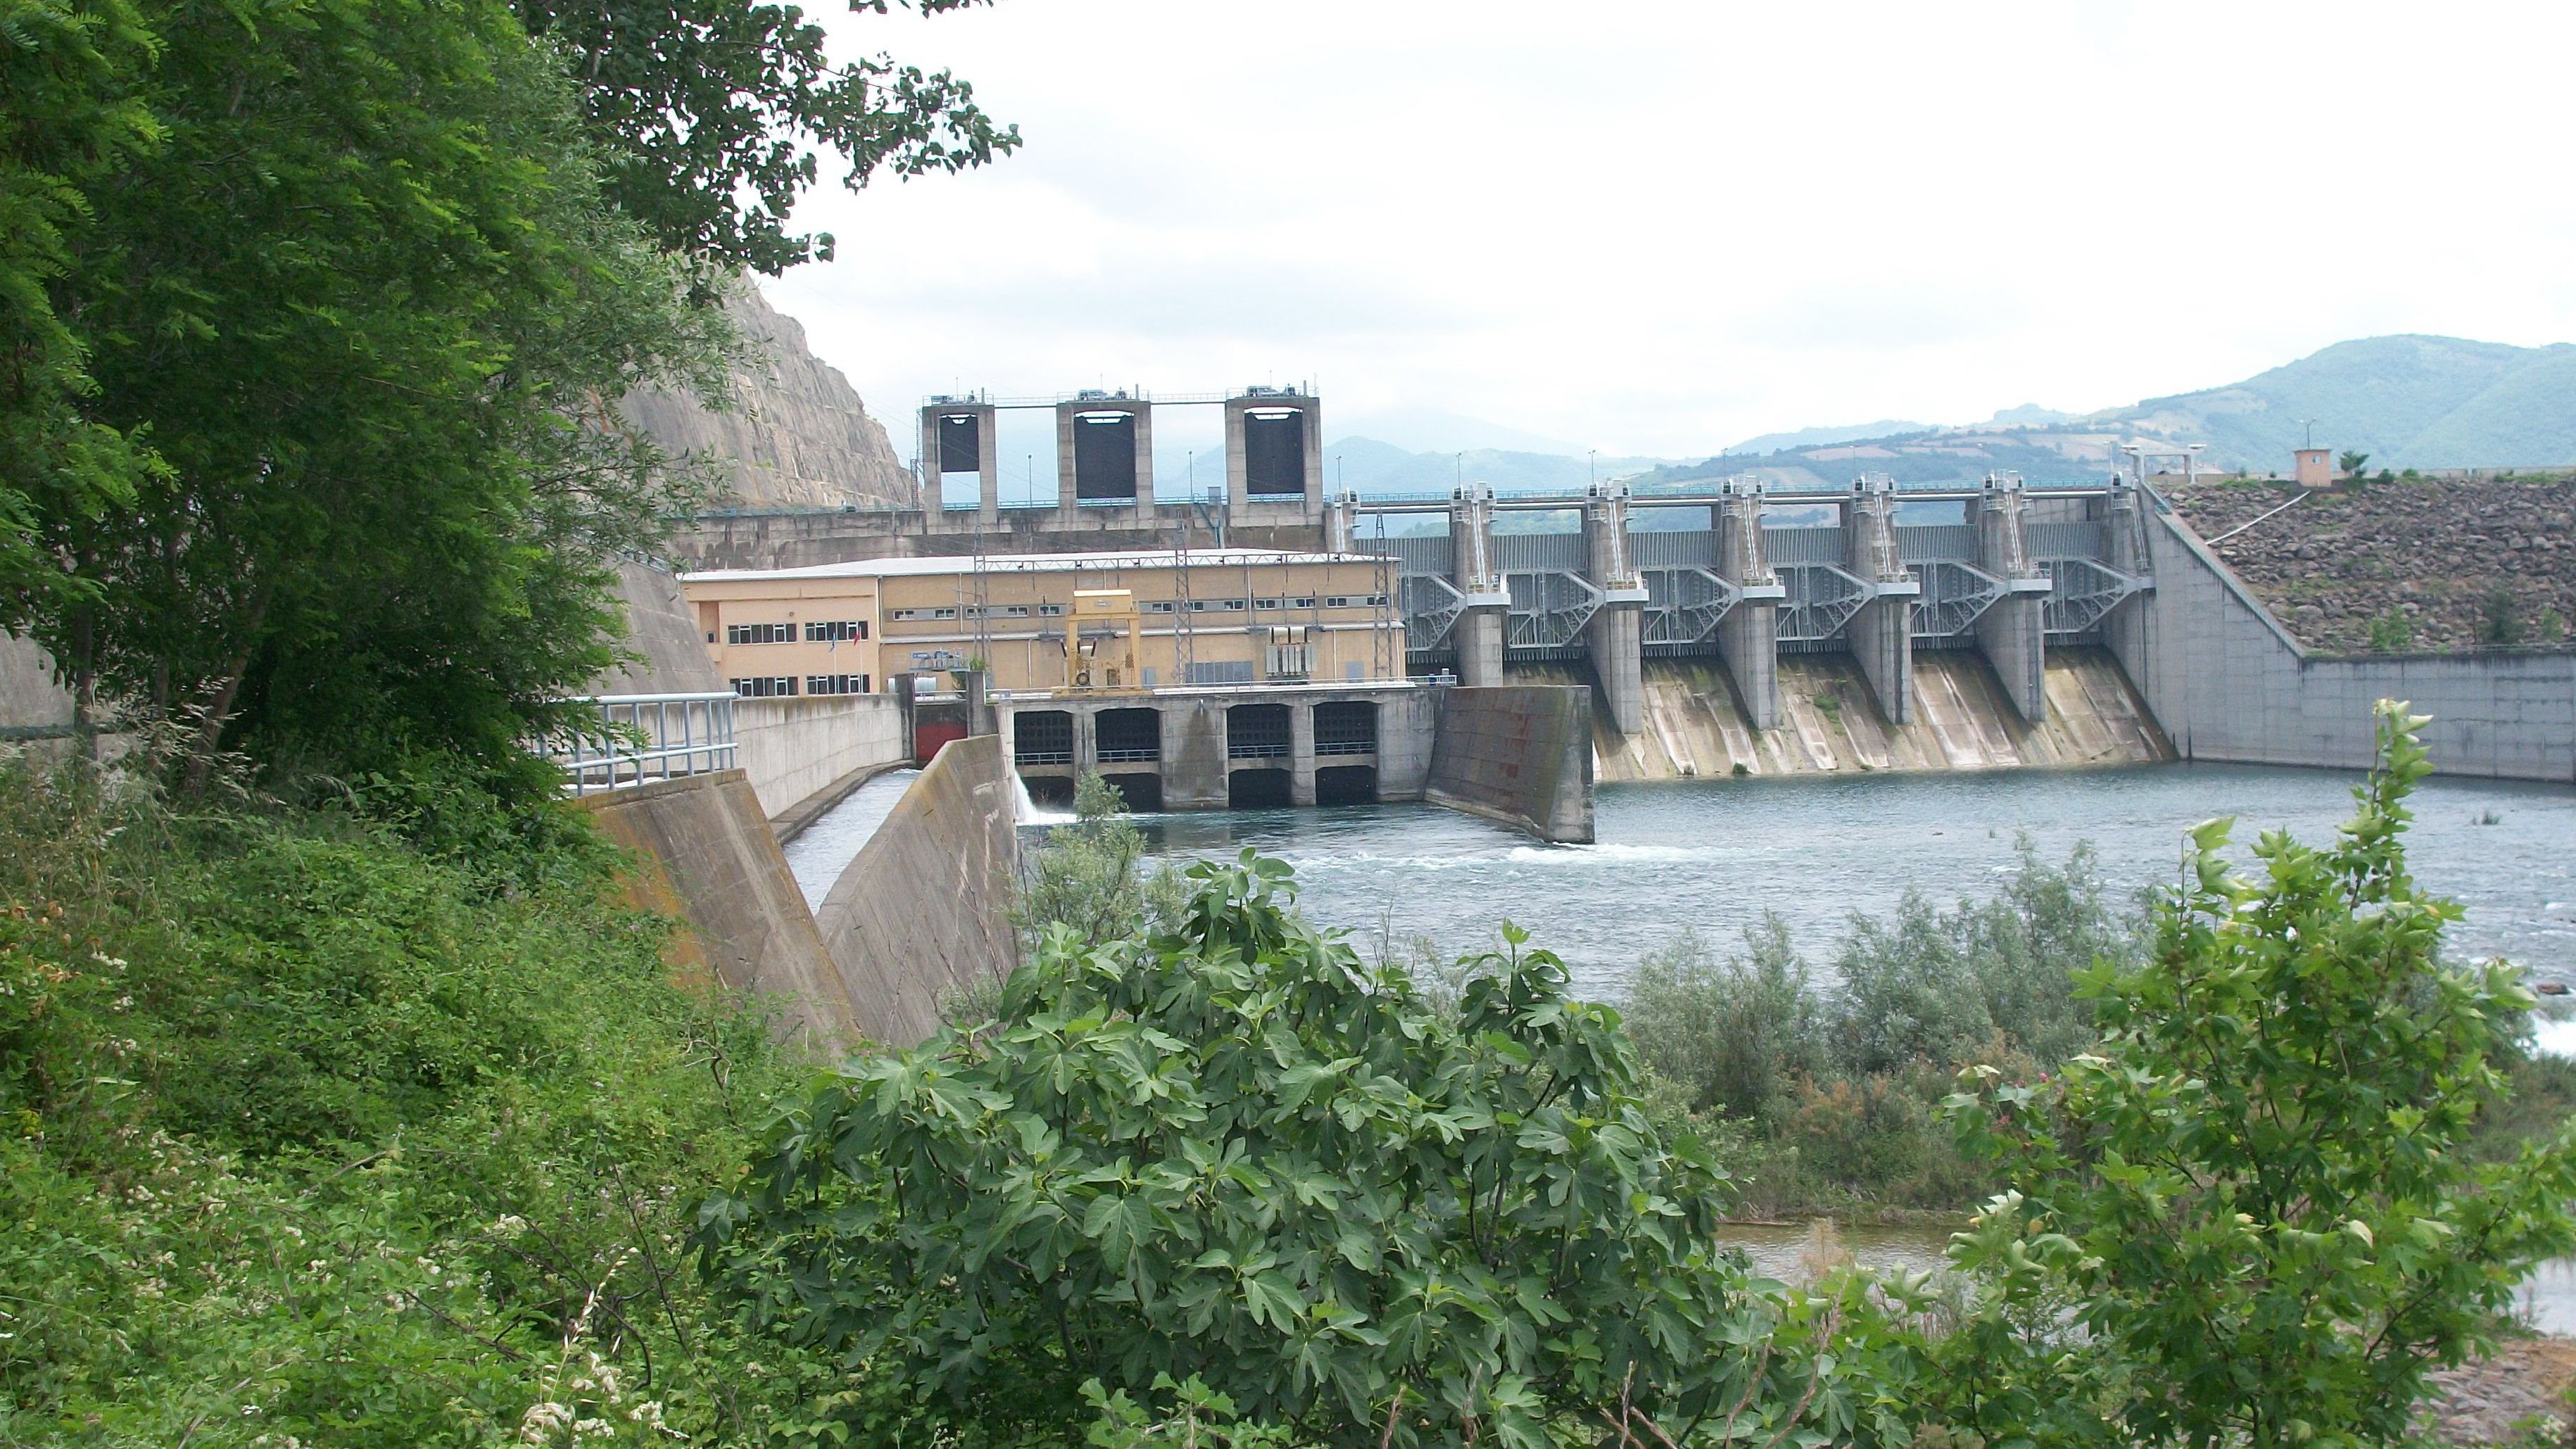 Dams are a frequent element in water transfer mega-projects and can inflict sustained damage on surrounding ecosystems.